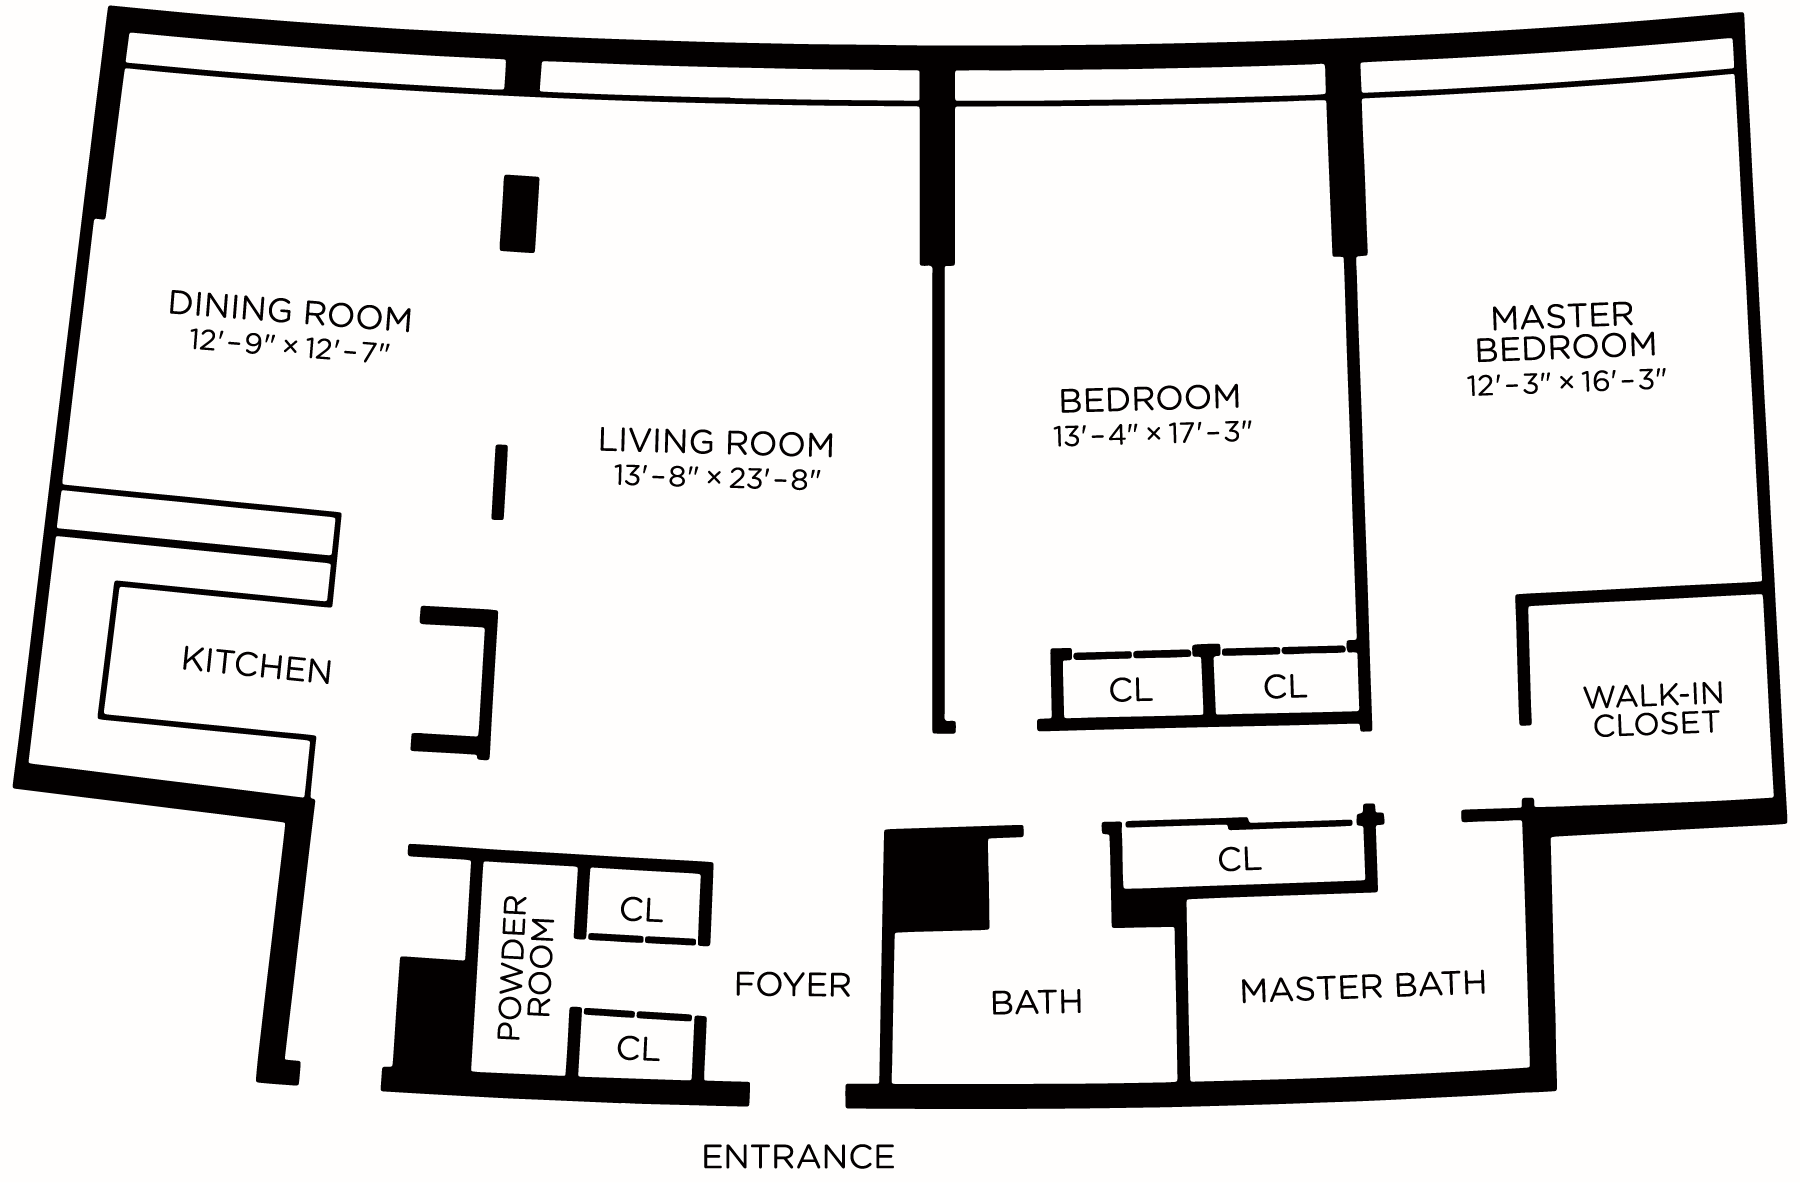 10a_2E-N floor plan.png